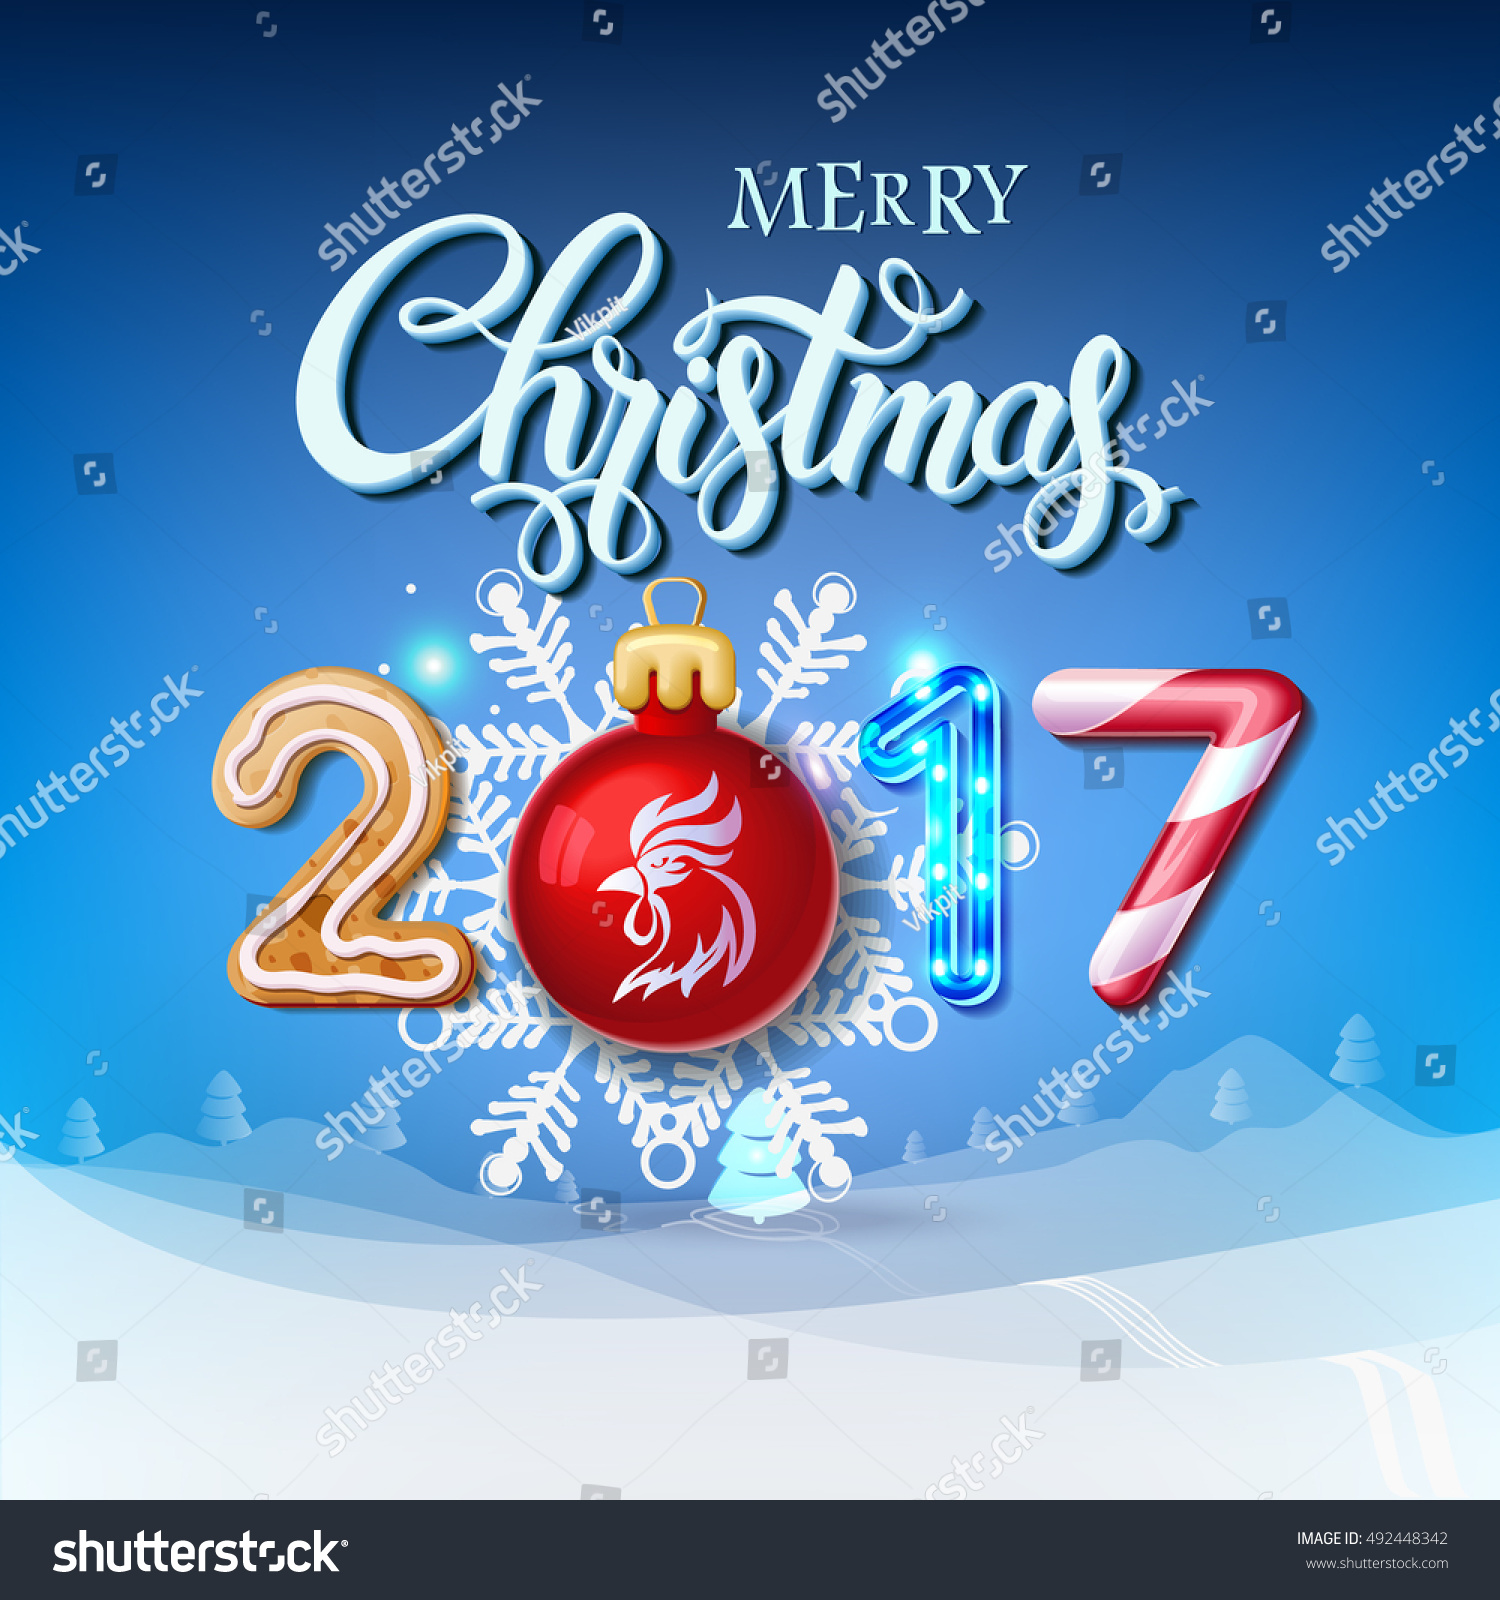 merry christmas 2017 decoration poster card happy new year sign background and composition on a